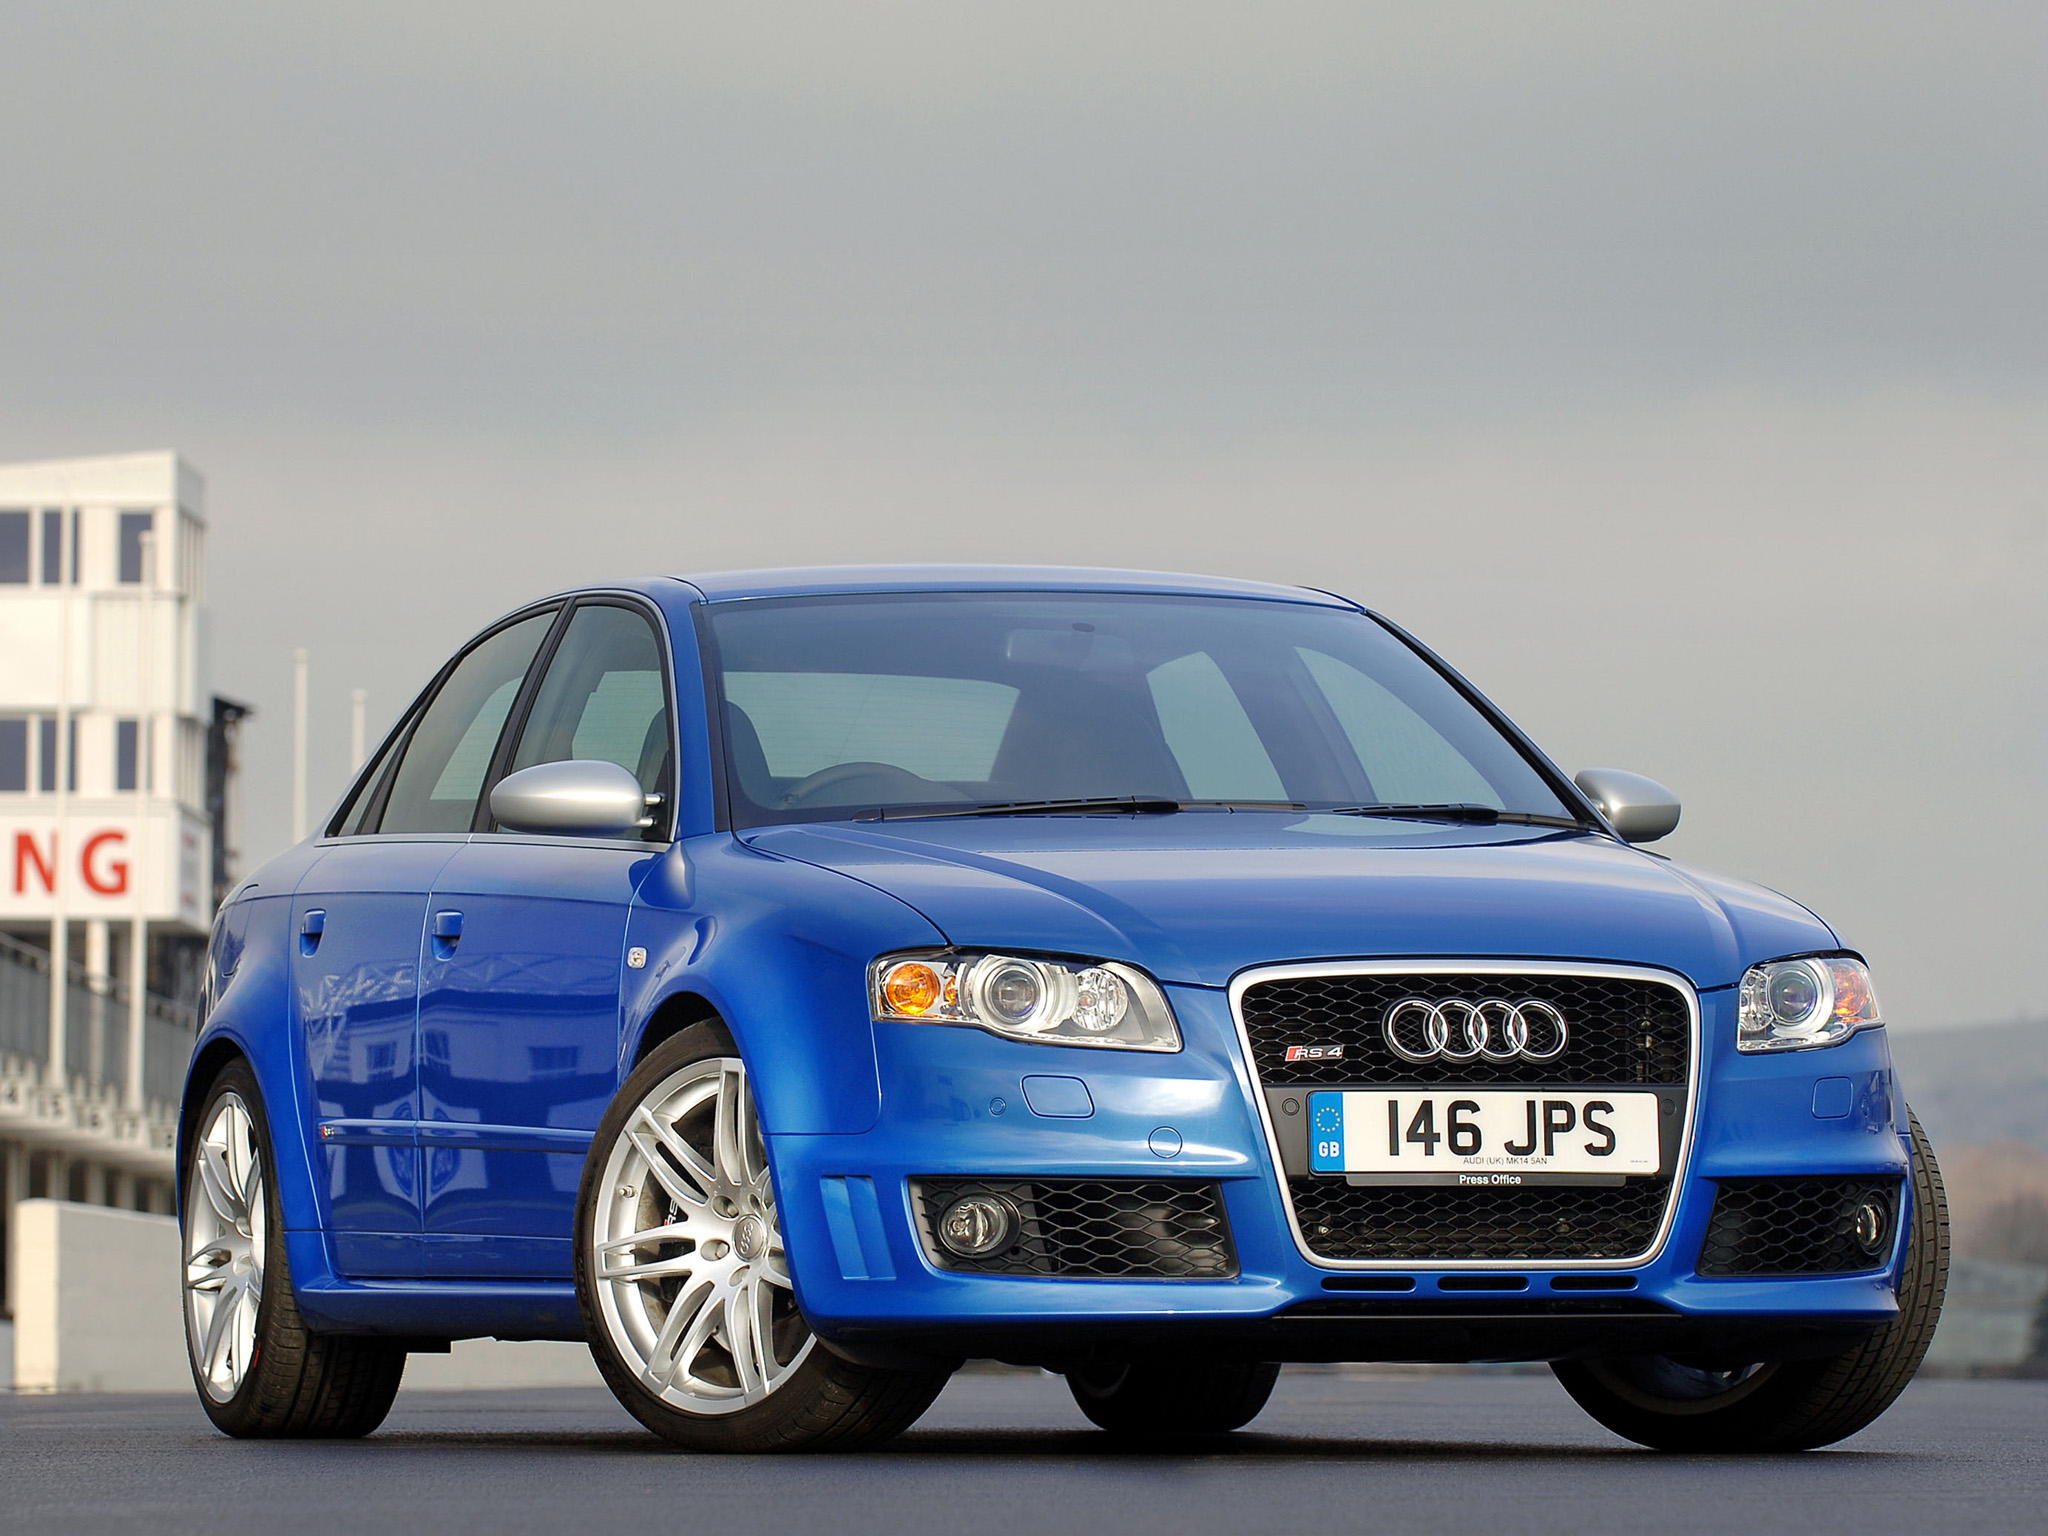 Audi RS4 picture # 98234 | Audi photo gallery | CarsBase.com